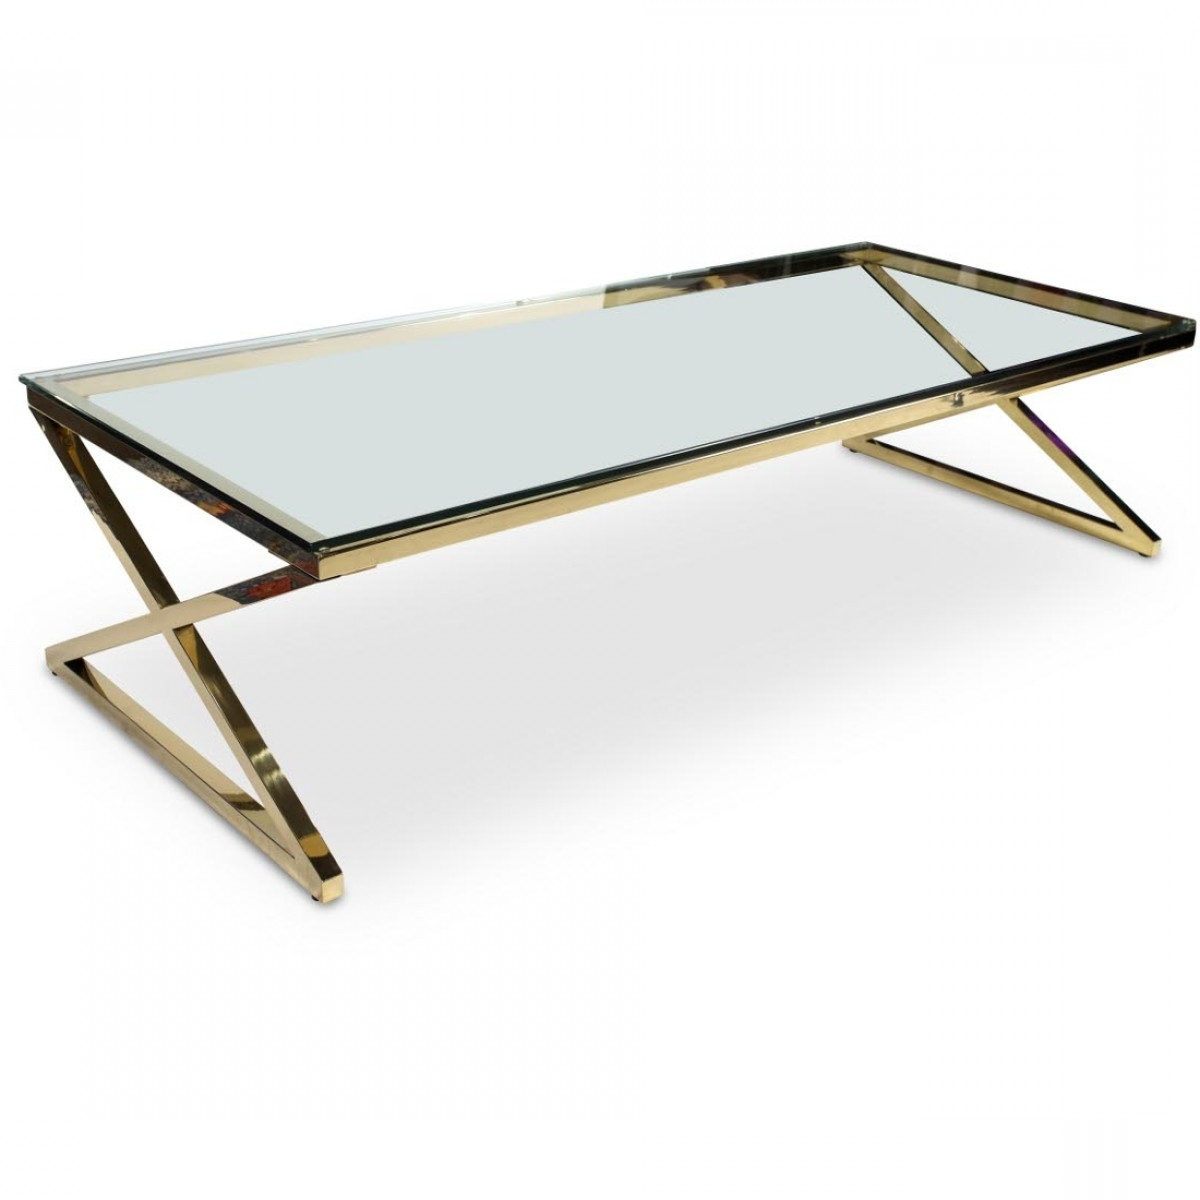 Most Popular Rectangular Coffee Tables With Brass Legs Intended For Aico Michael Amini Trance Stacy Rectangular Cocktail Table With (View 11 of 20)